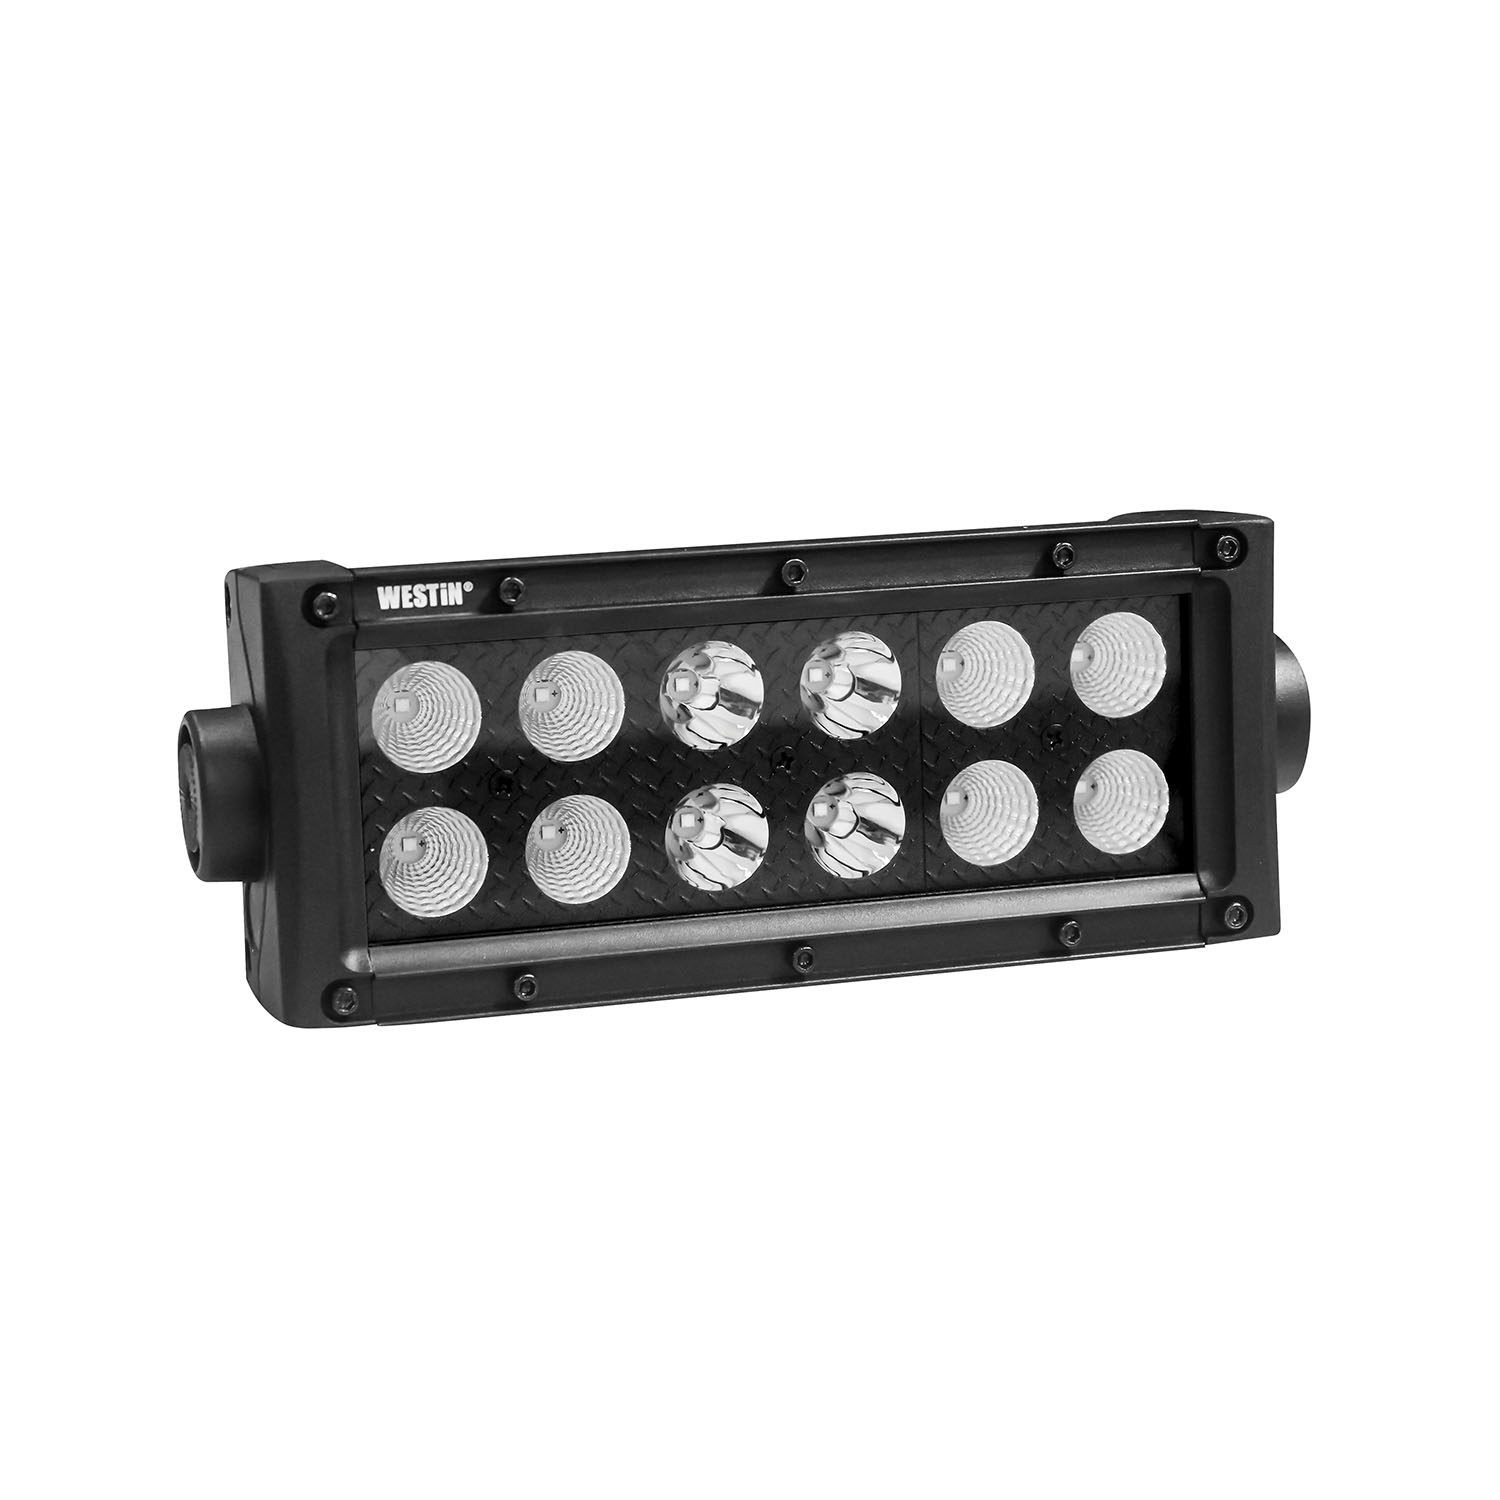 Westin 09-12212-12C B-FORCE LED Light Bar